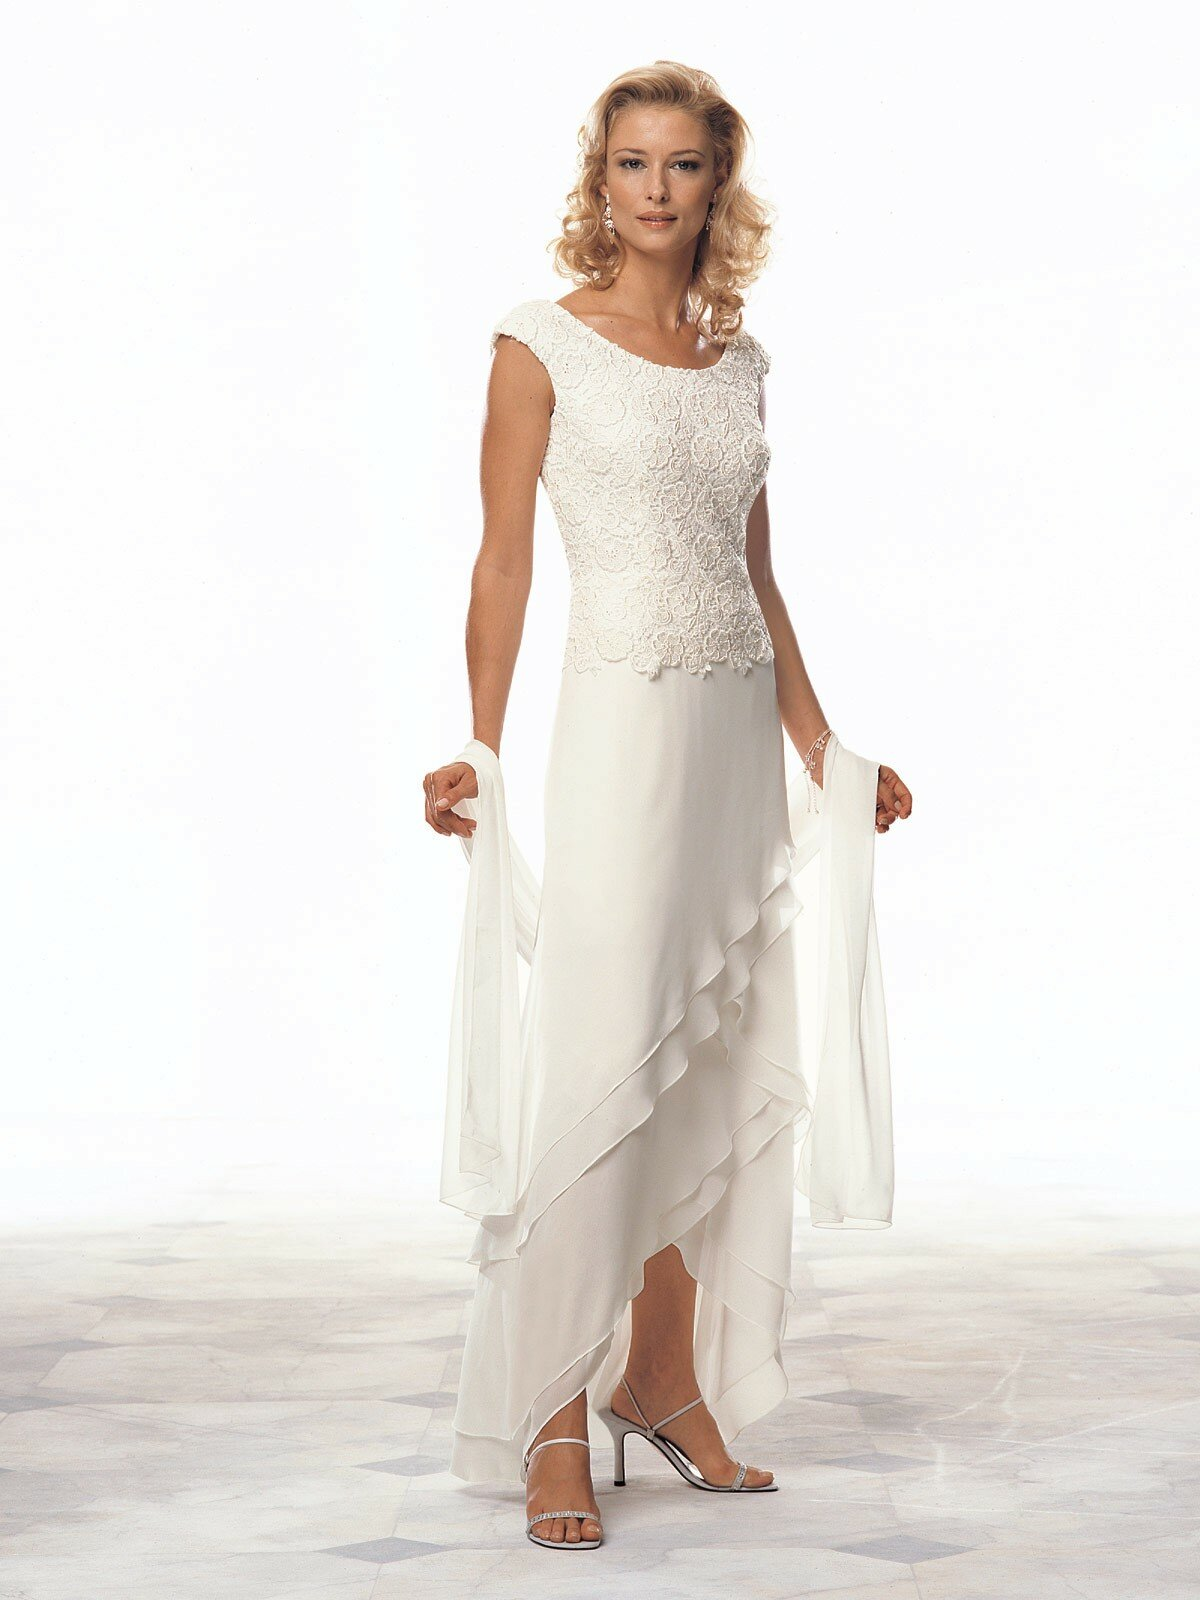 Dresses for wedding mother of the groom pictures ideas for Best place to buy a dress for a wedding